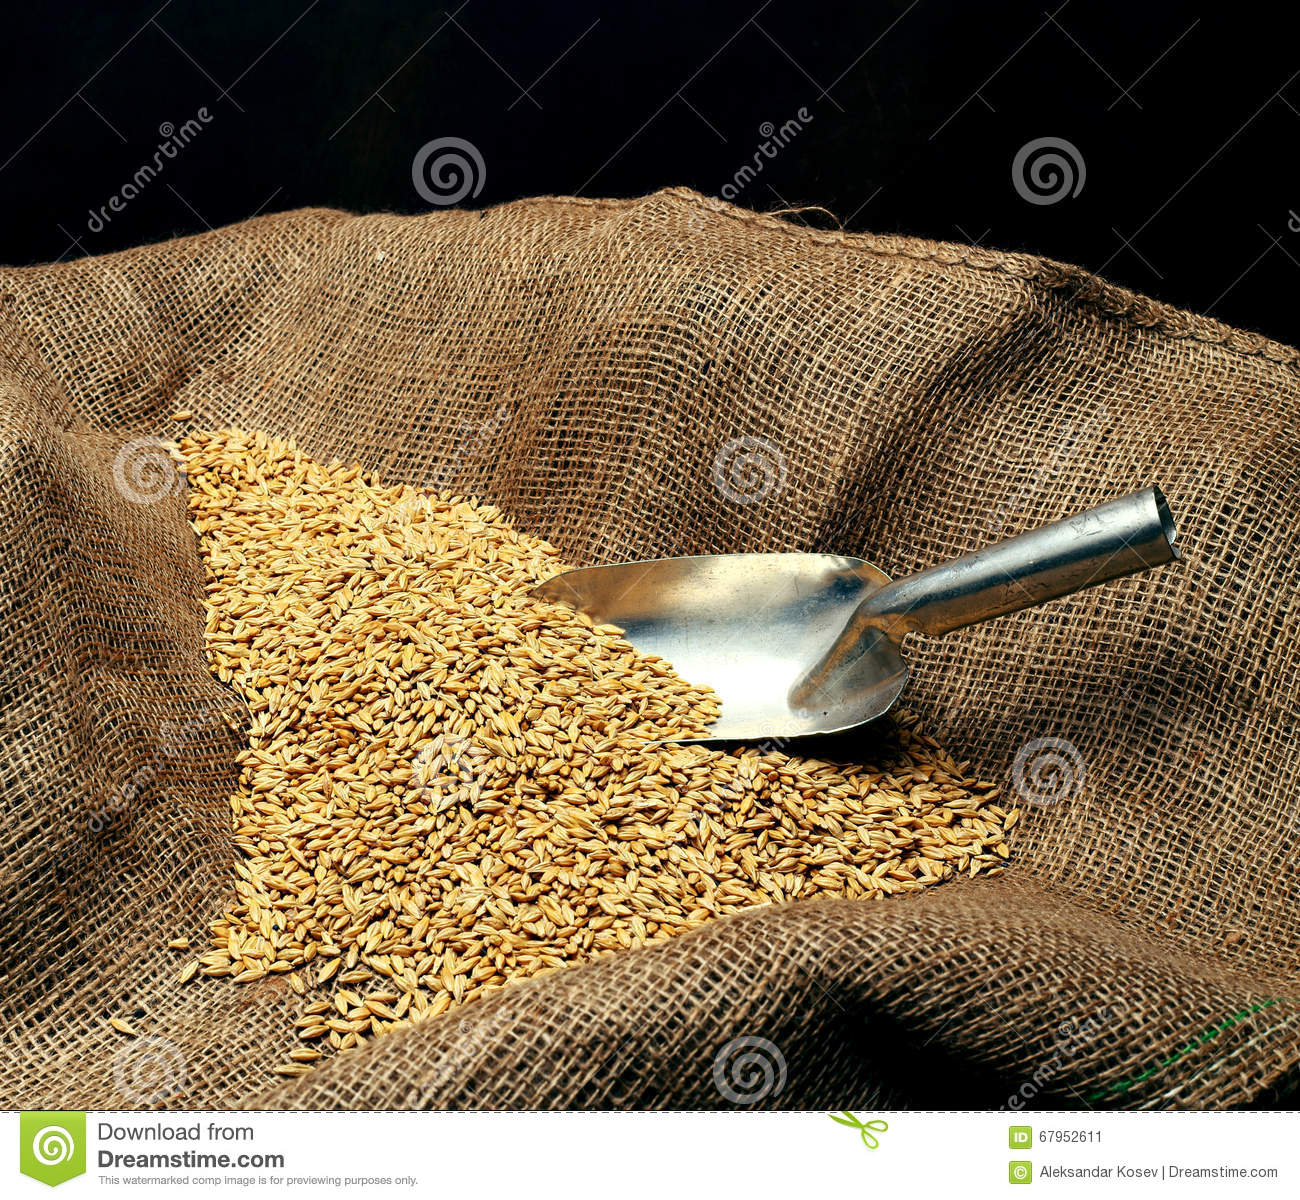 Wheat sowing seed